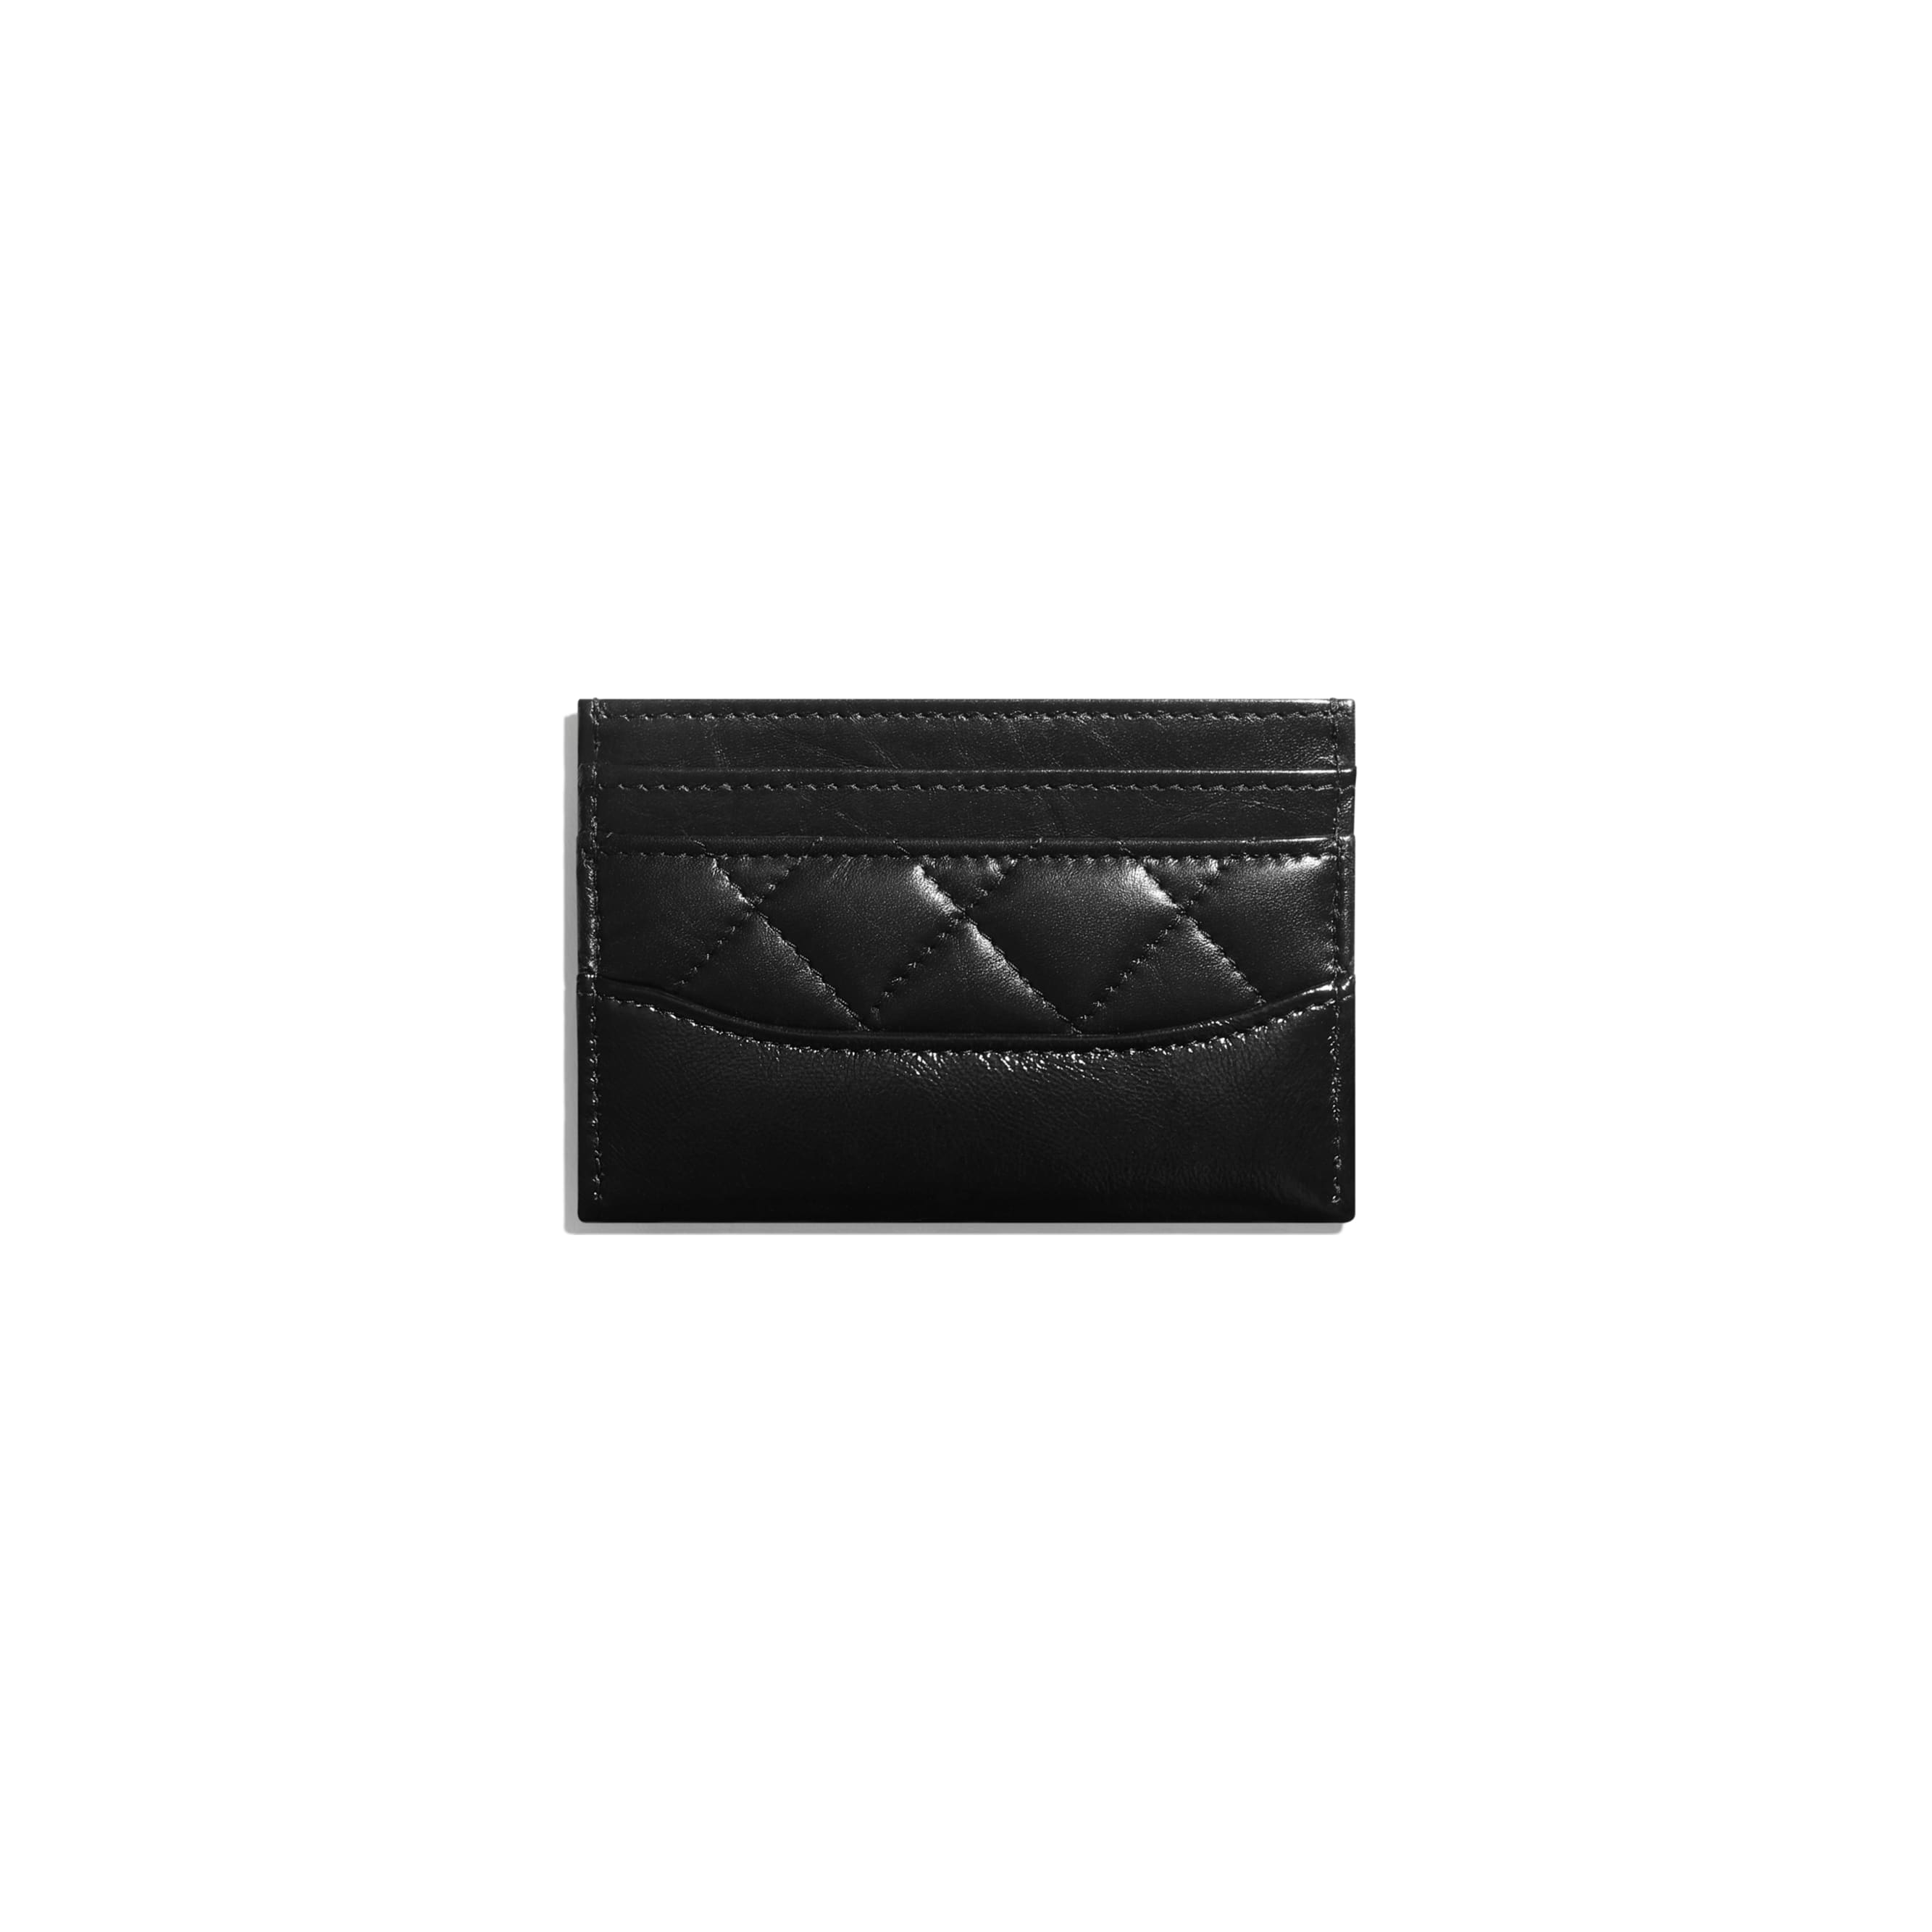 Card Holder - Black - Aged Calfskin, Smooth Calfskin & Black Metal - CHANEL - Alternative view - see standard sized version